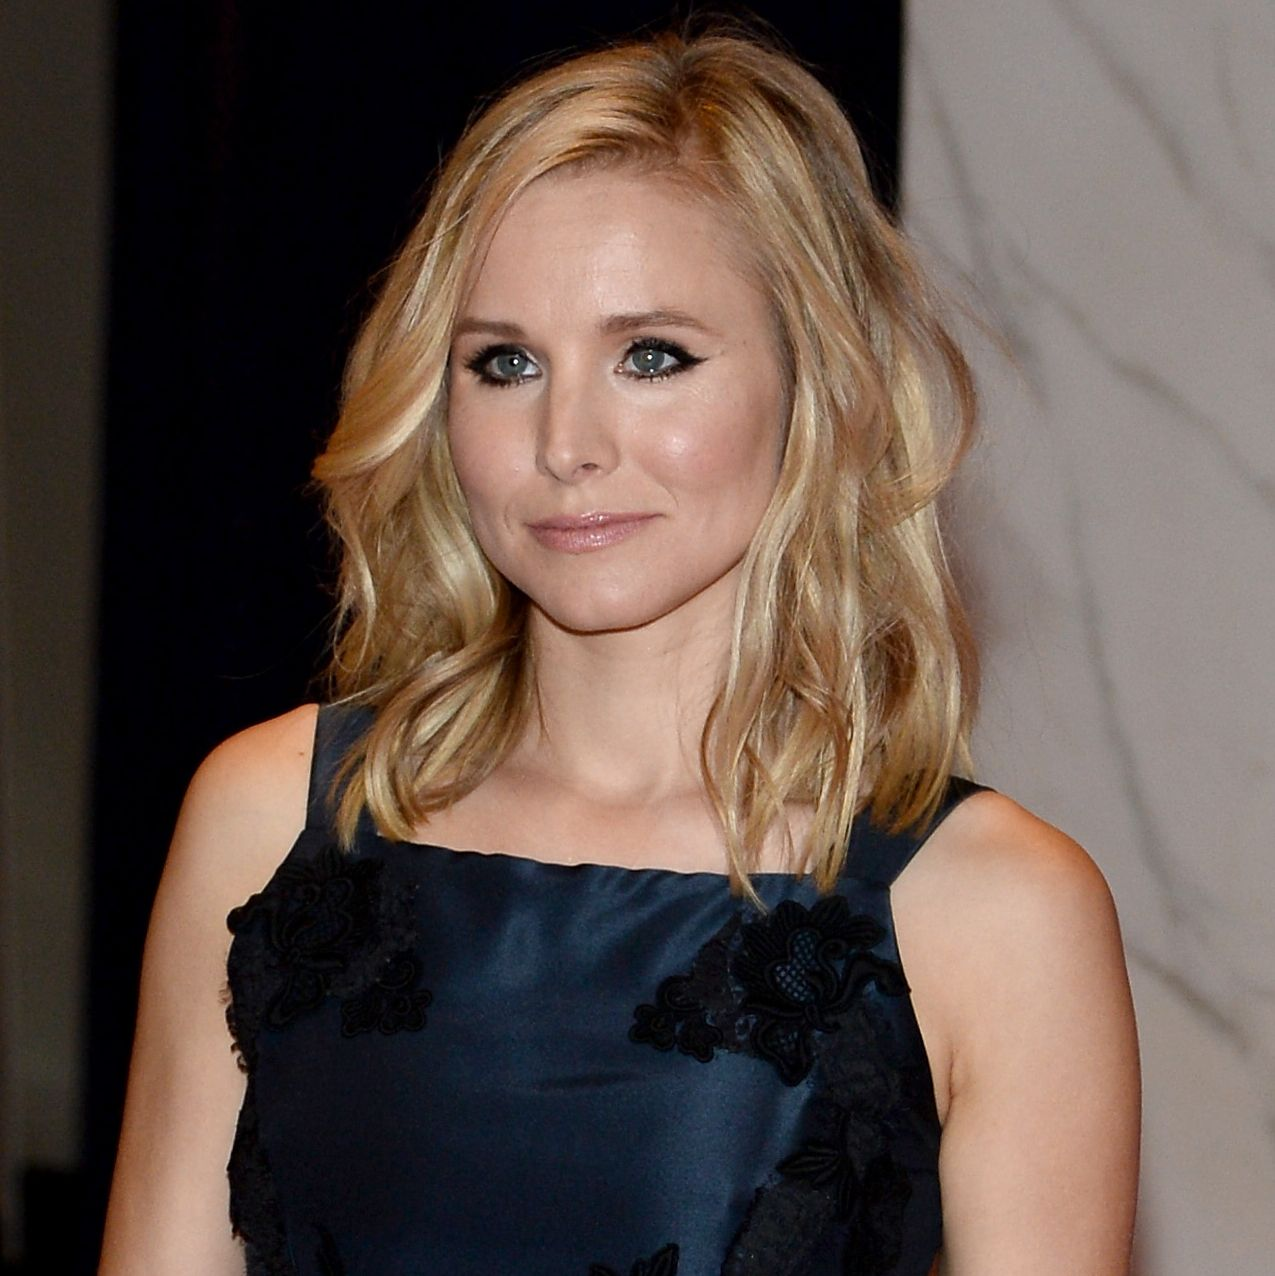 """""""I felt worthless, like I had nothing to offer."""" """"For me, depression is not sadness. It's not having a bad day and needing a hug. It gave me a complete and utter sense of isolation and loneliness,"""" Kristen Bell wrote in Time in May 2016, when she decided to help others by opening up about her battle with depression. """"Its debilitation was all-consuming, and it shut down my mental circuit board. I felt worthless, like I had nothing to offer, like I was a failure. Now, after seeking help, I can see that those thoughts, of course, couldn't have been more wrong."""""""